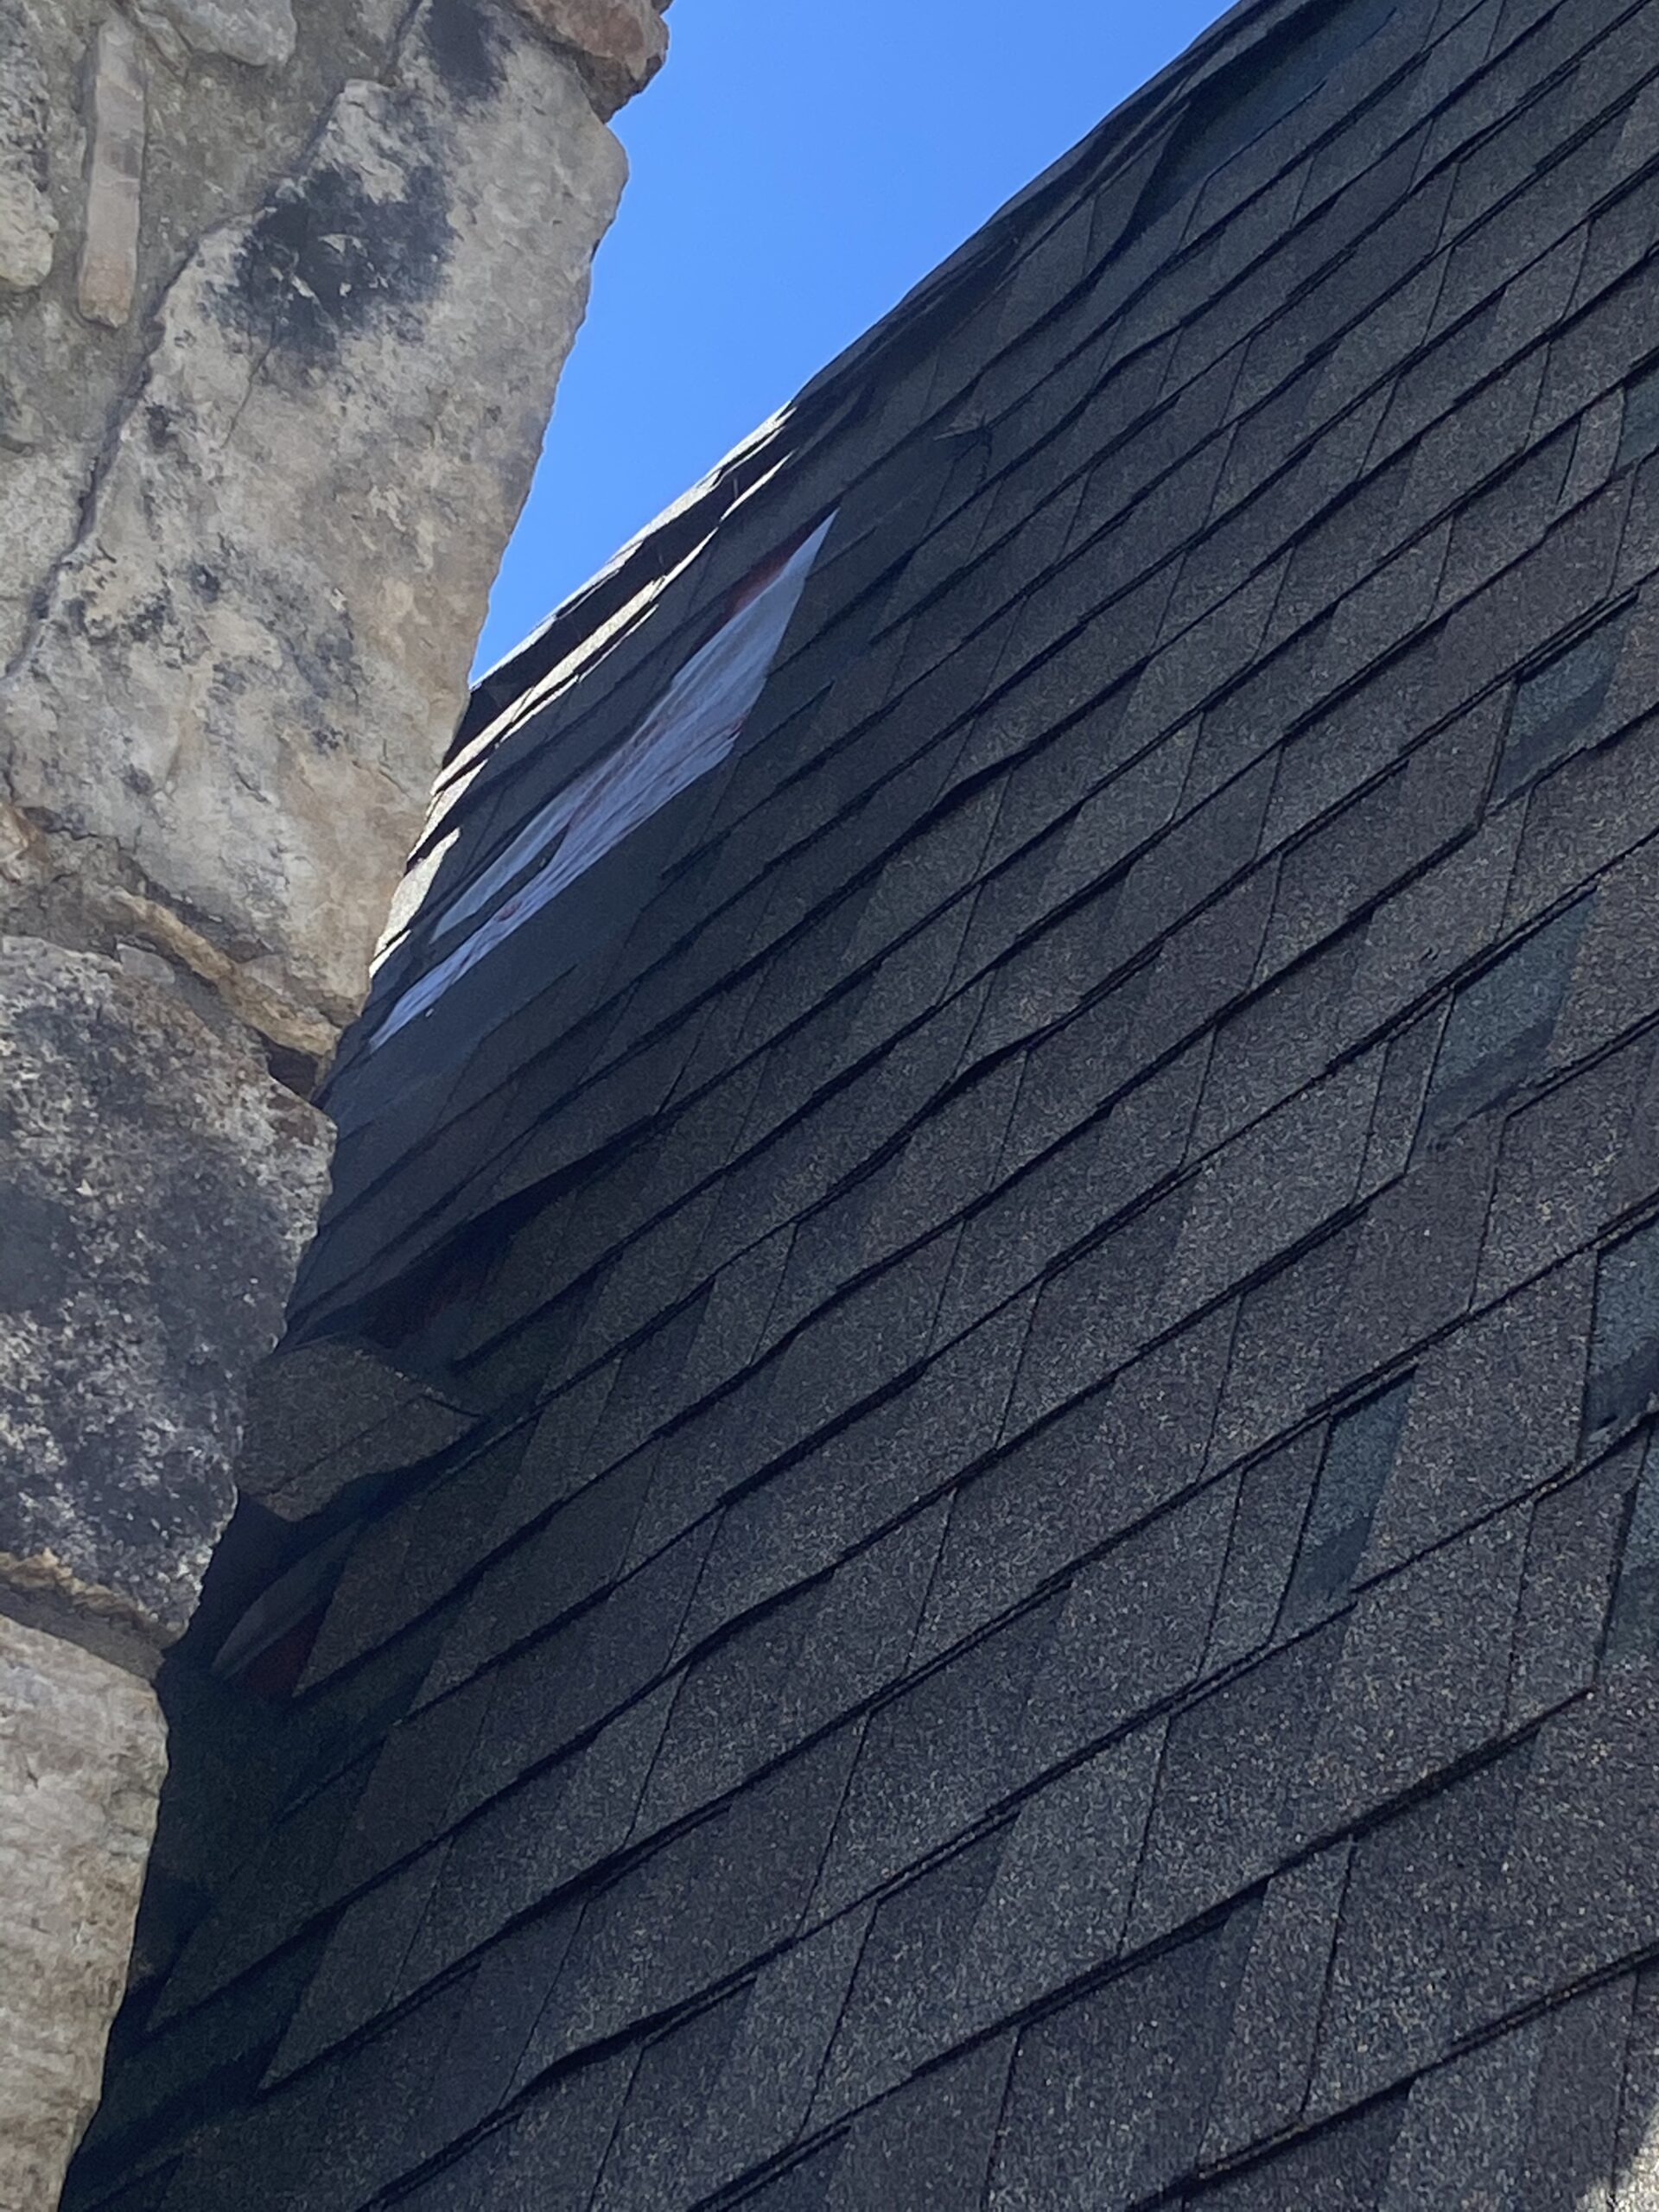 This is a picture of shingles missing behind the chimney